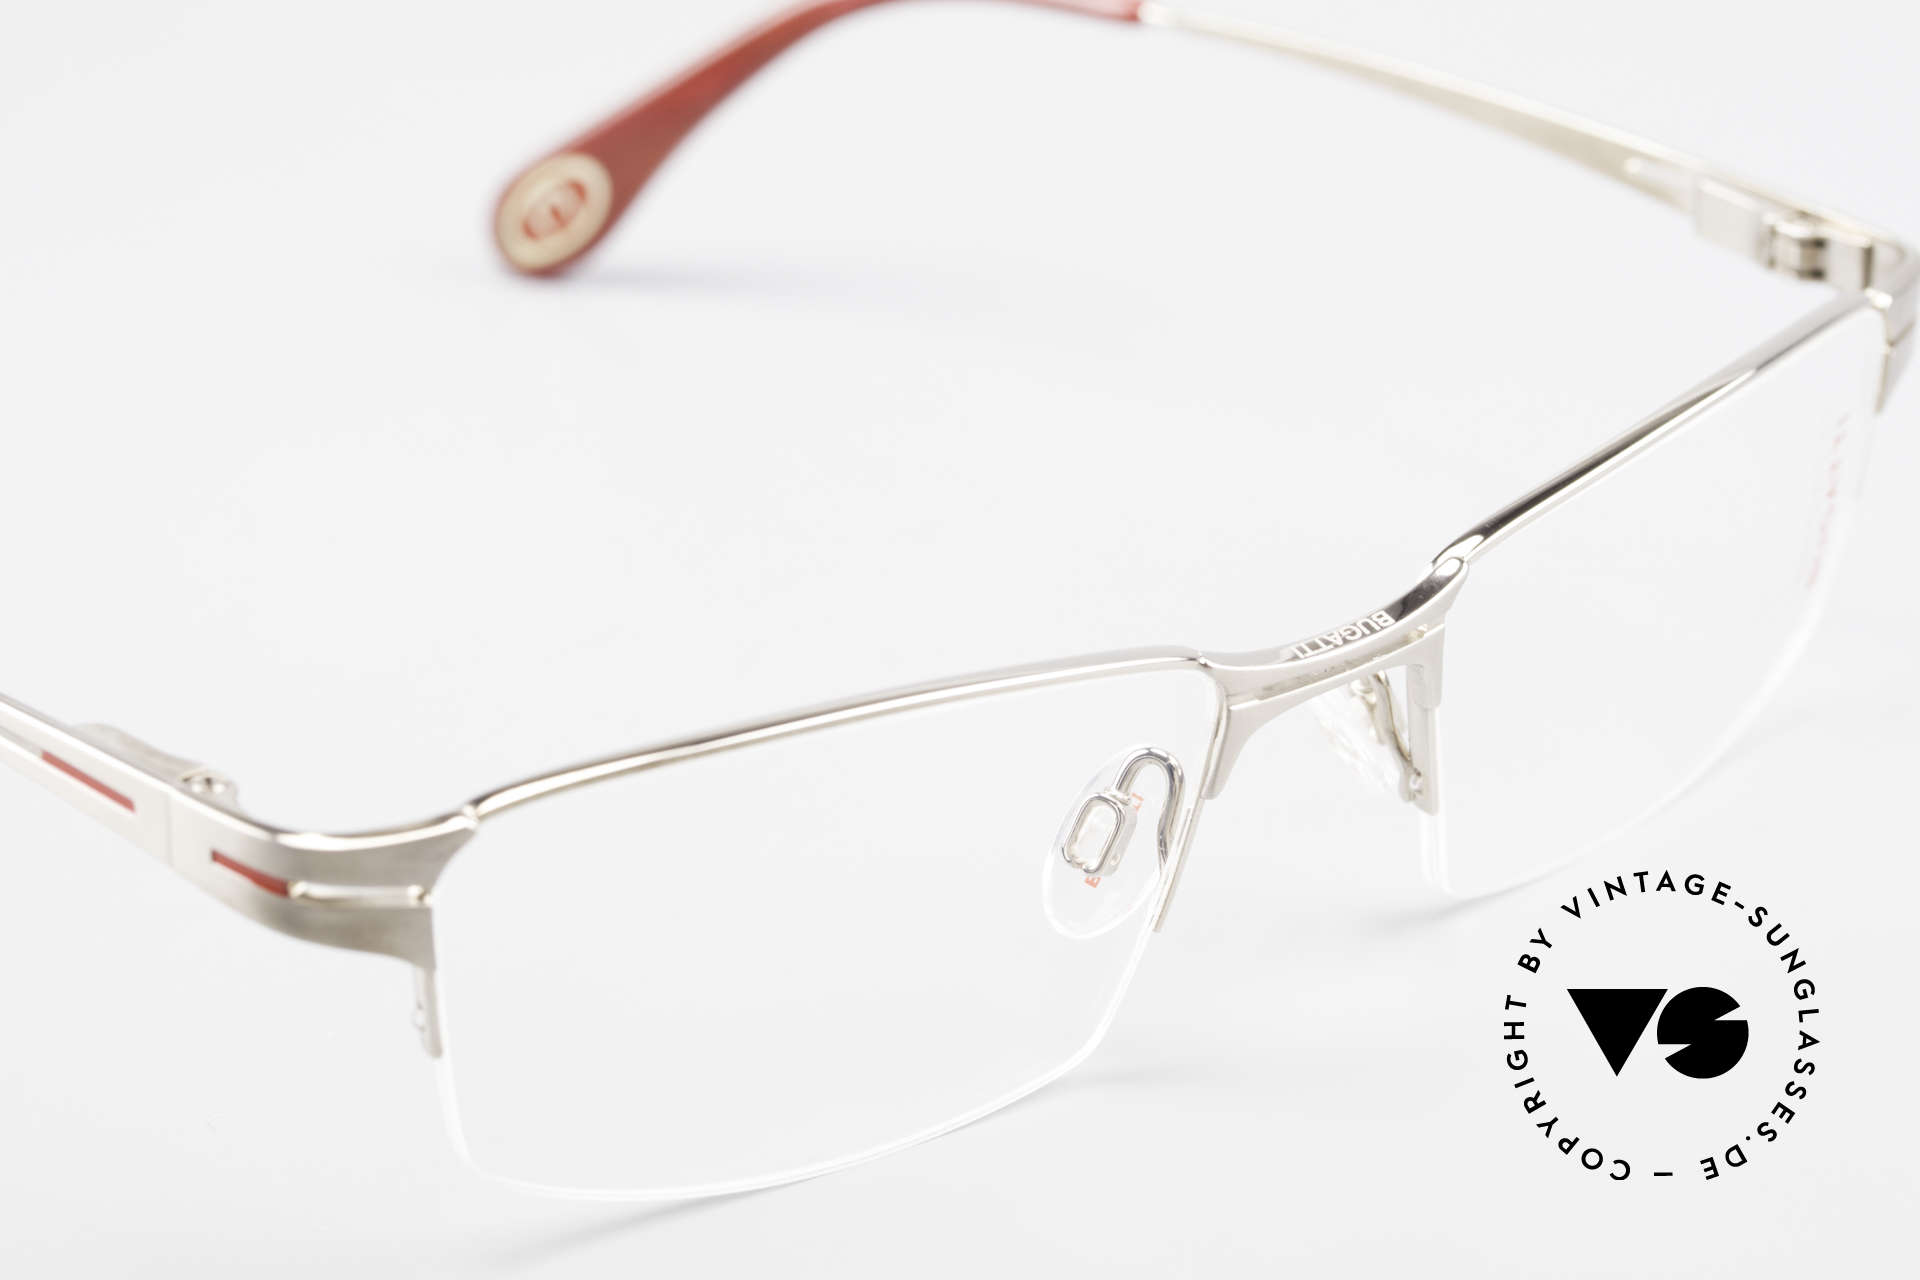 Bugatti 456 Nylor Titan Frame Palladium, unworn (like all our rare vintage Bugatti eyeglasses), Made for Men